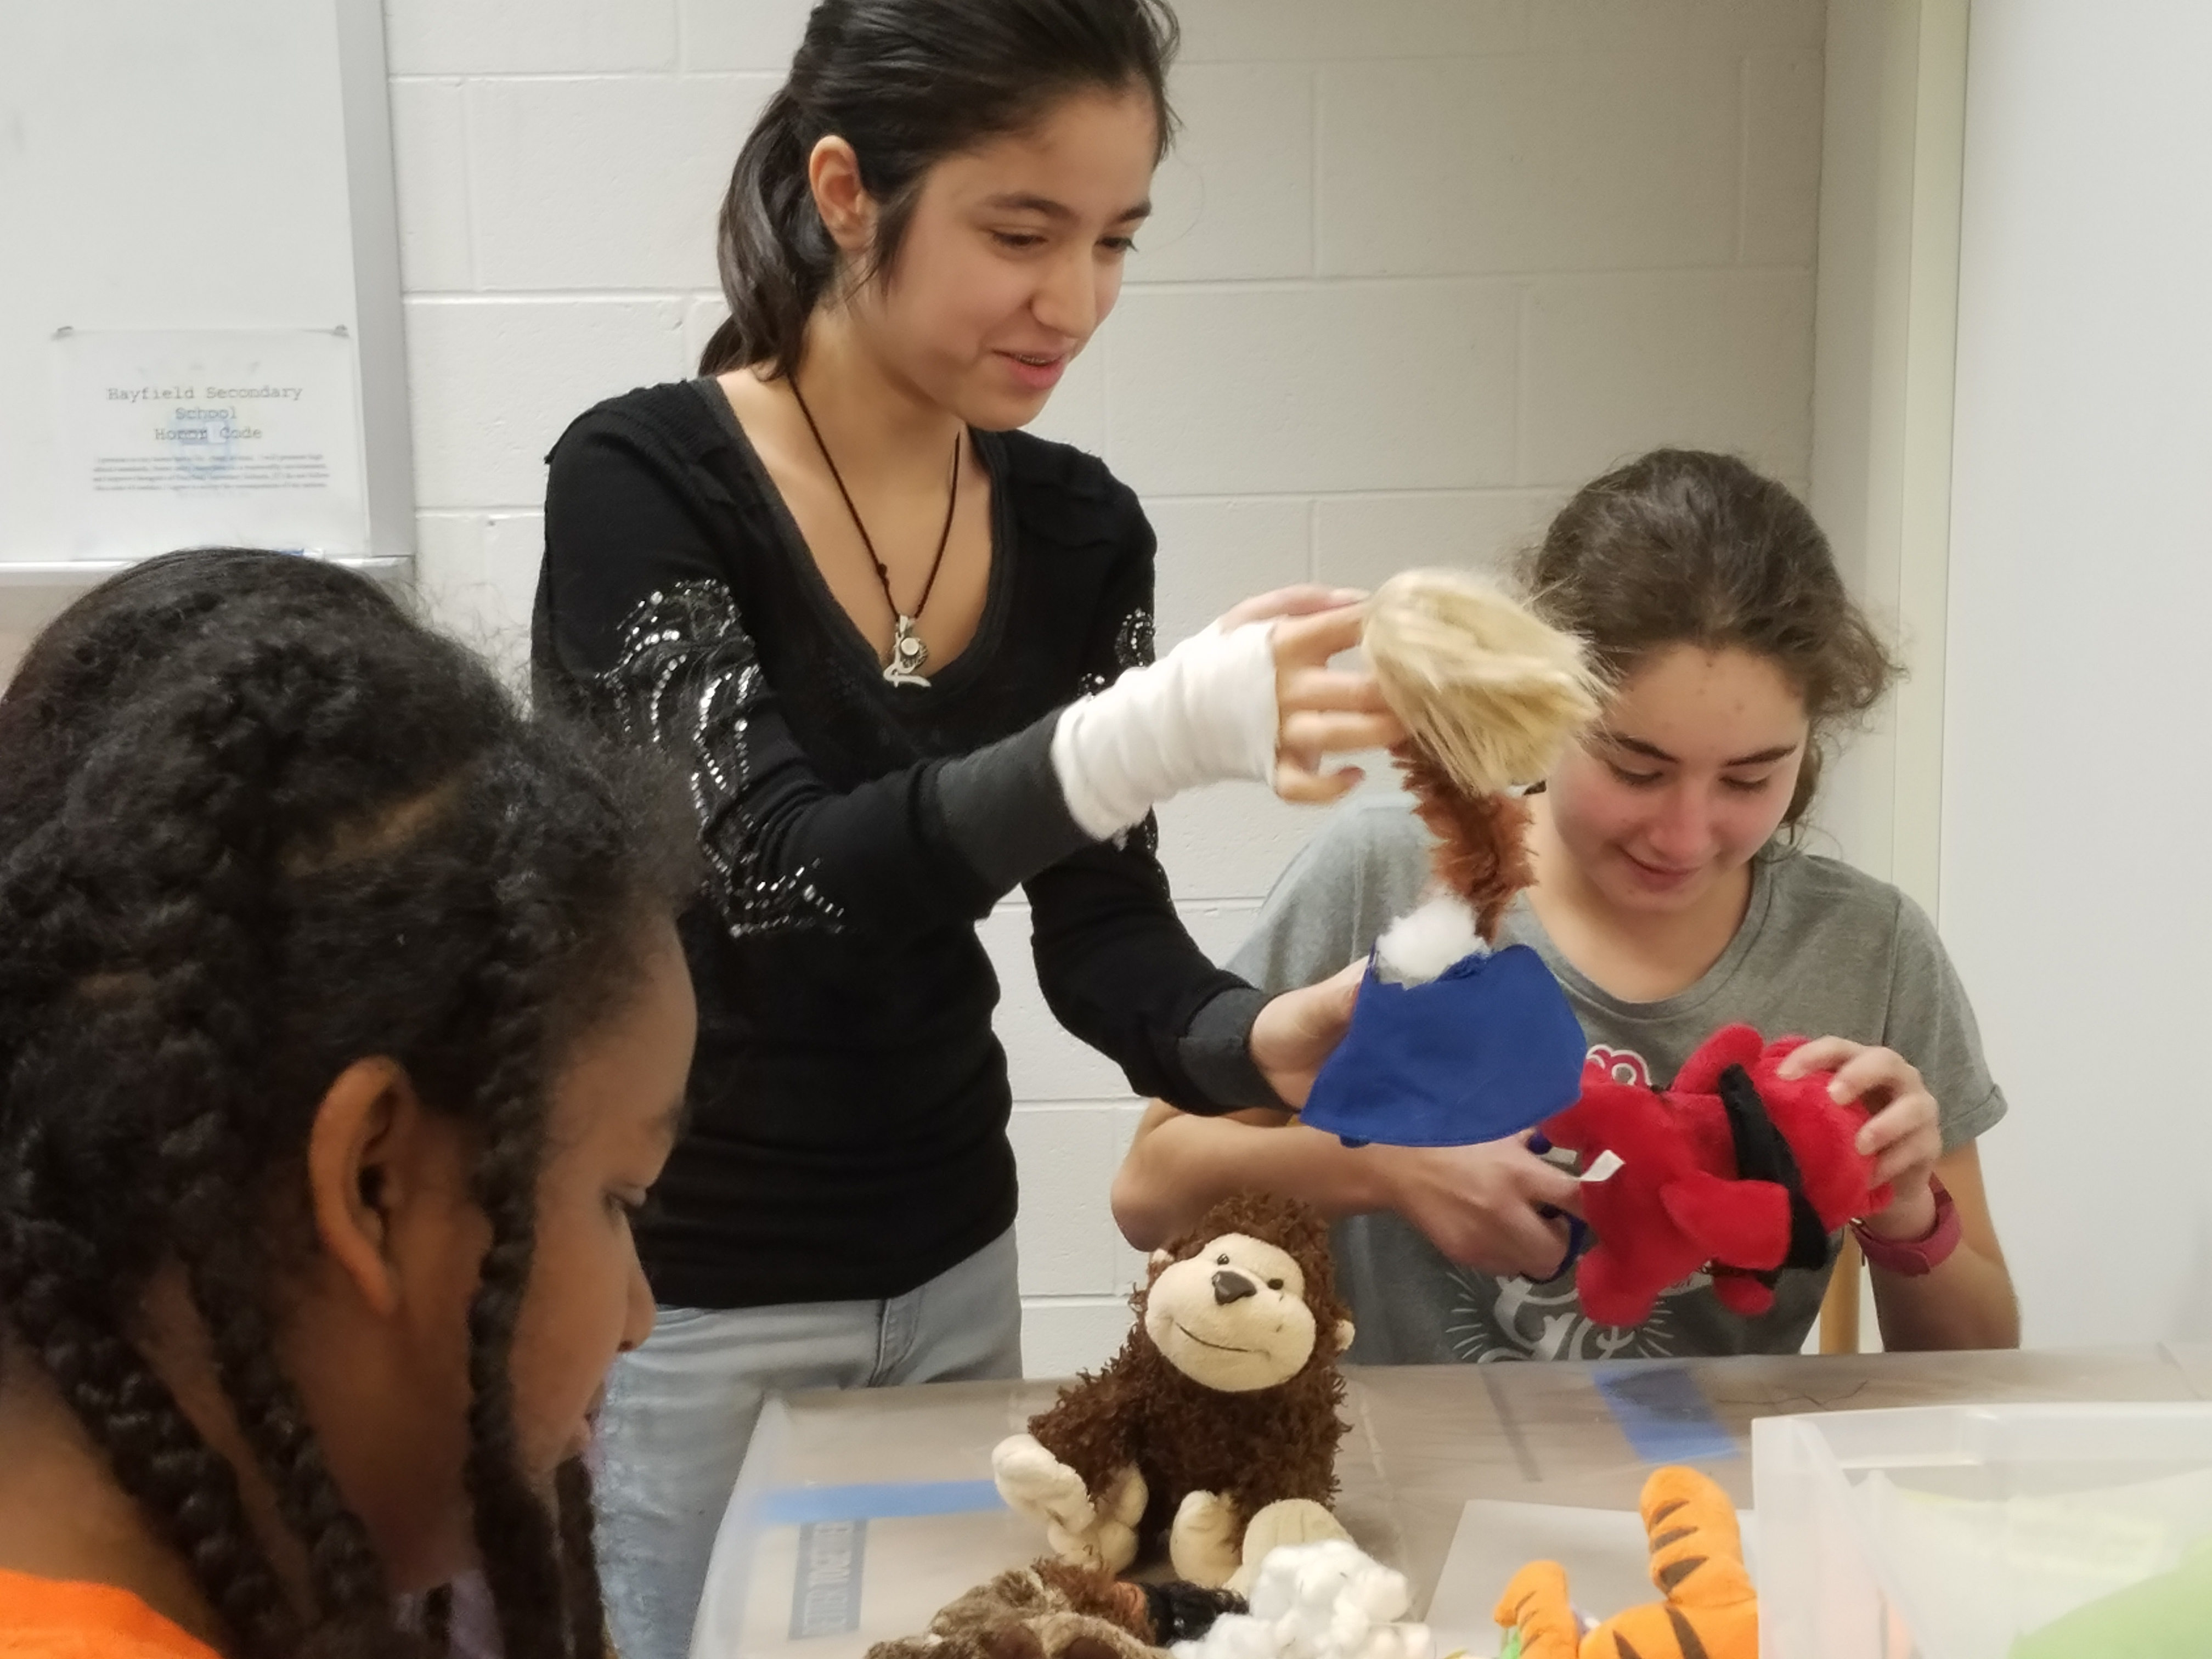 Students at Hayfield Secondary School, part of Fairfax County Public Schools, create all sorts of unique objects during a Frankentoy maker activity.